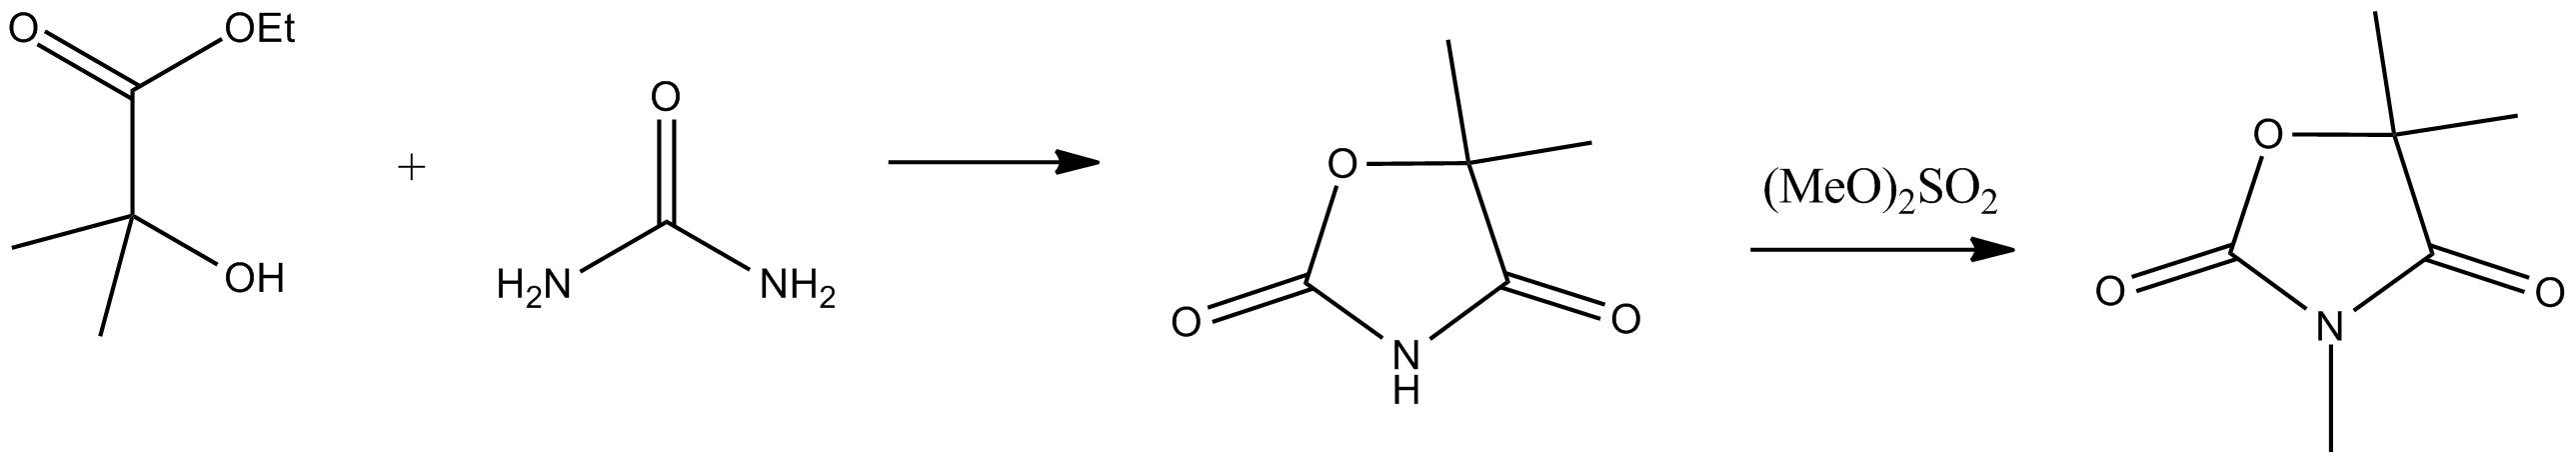 Trimethadione